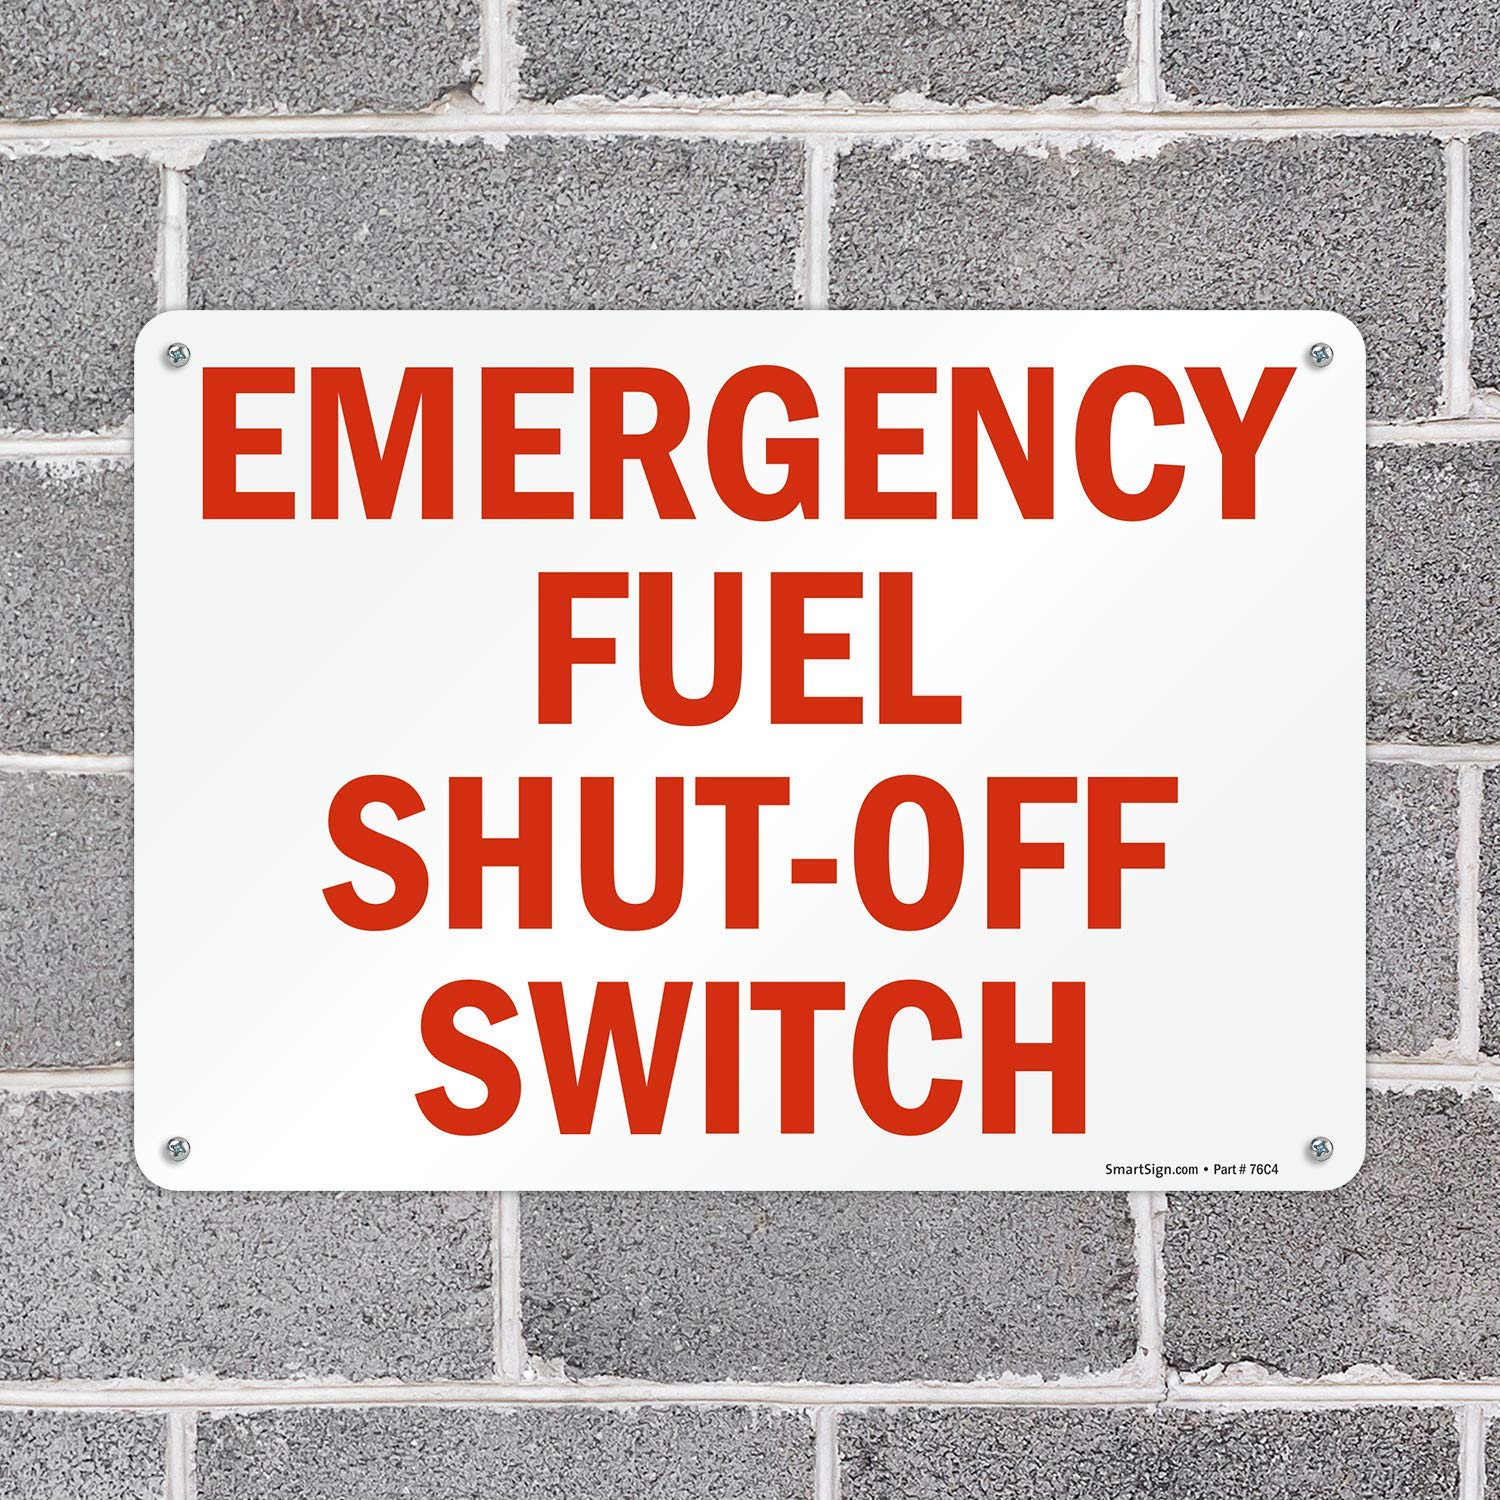 Fire Petrol Pumps Switch Off Here Sticker Safety Sign Red 148 x 120mm